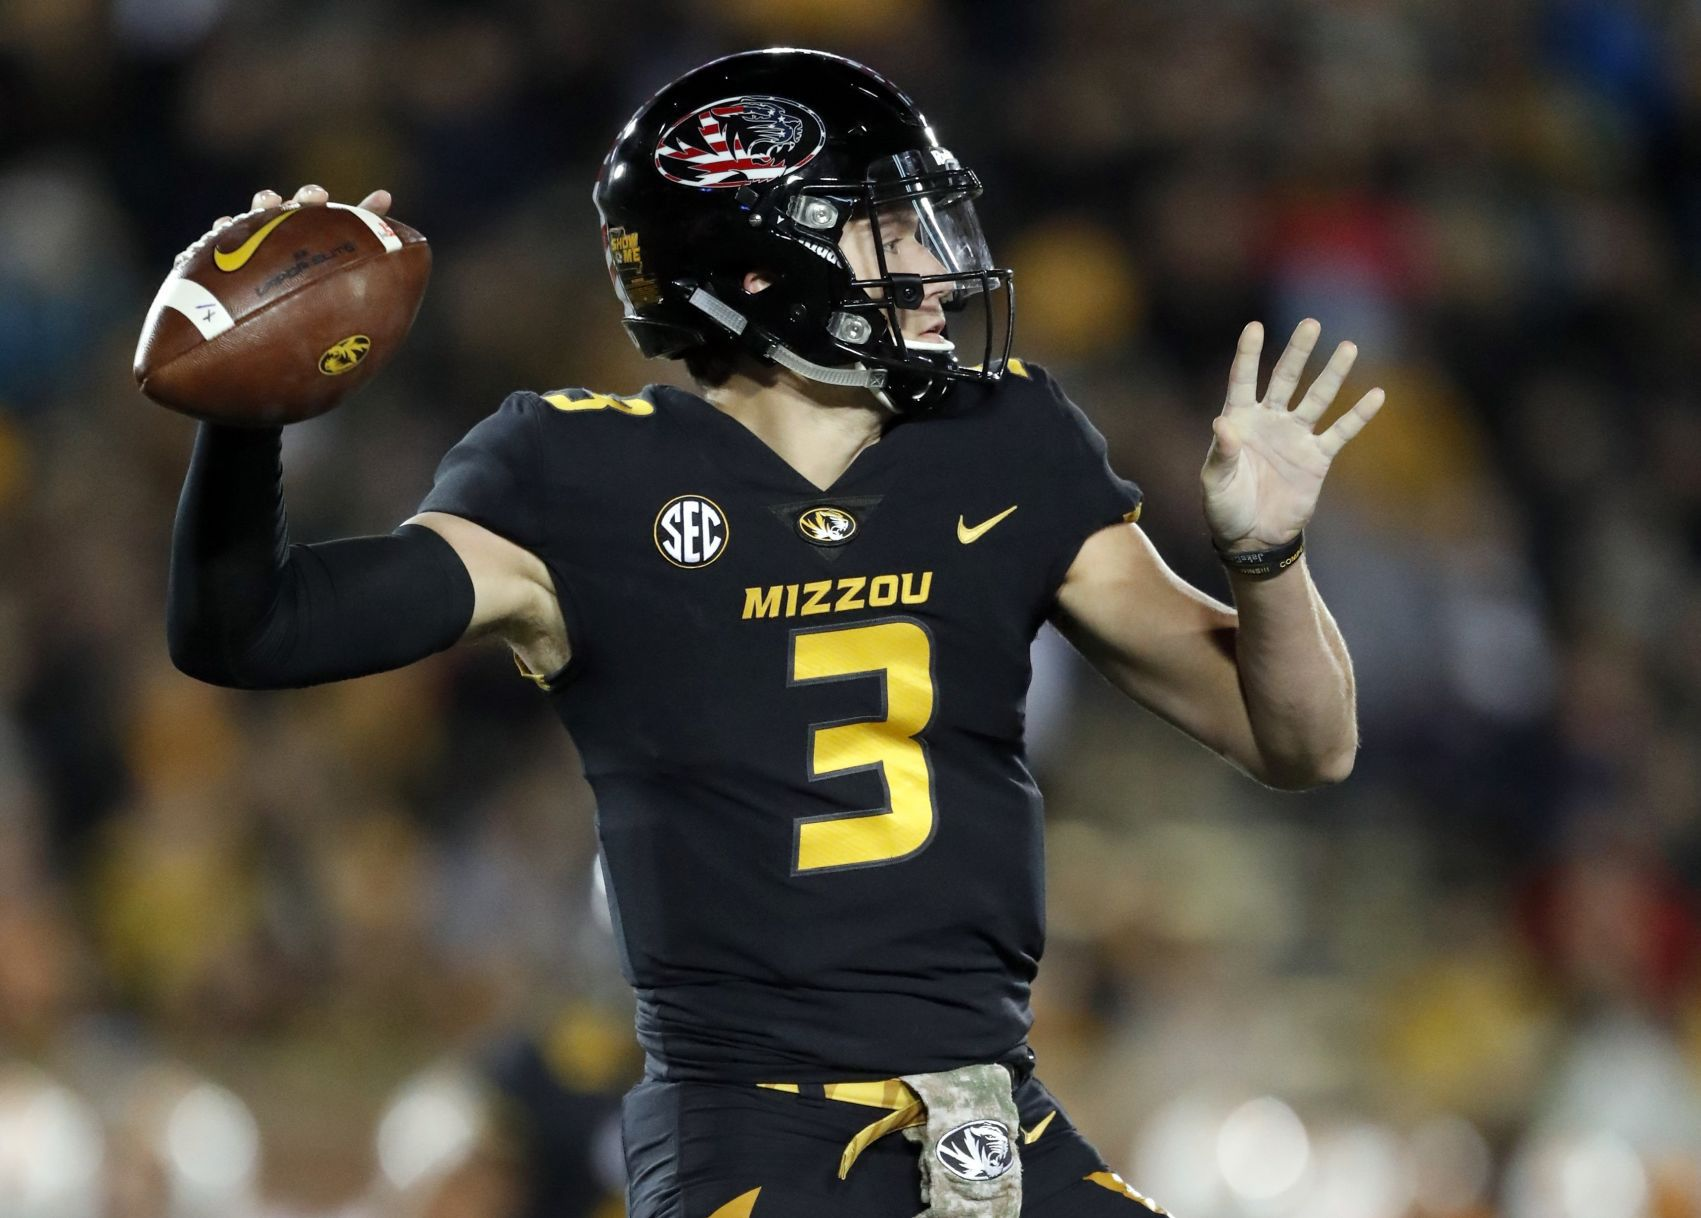 Nfl Draft Here Are 10 Players Who Are Sure To Be First